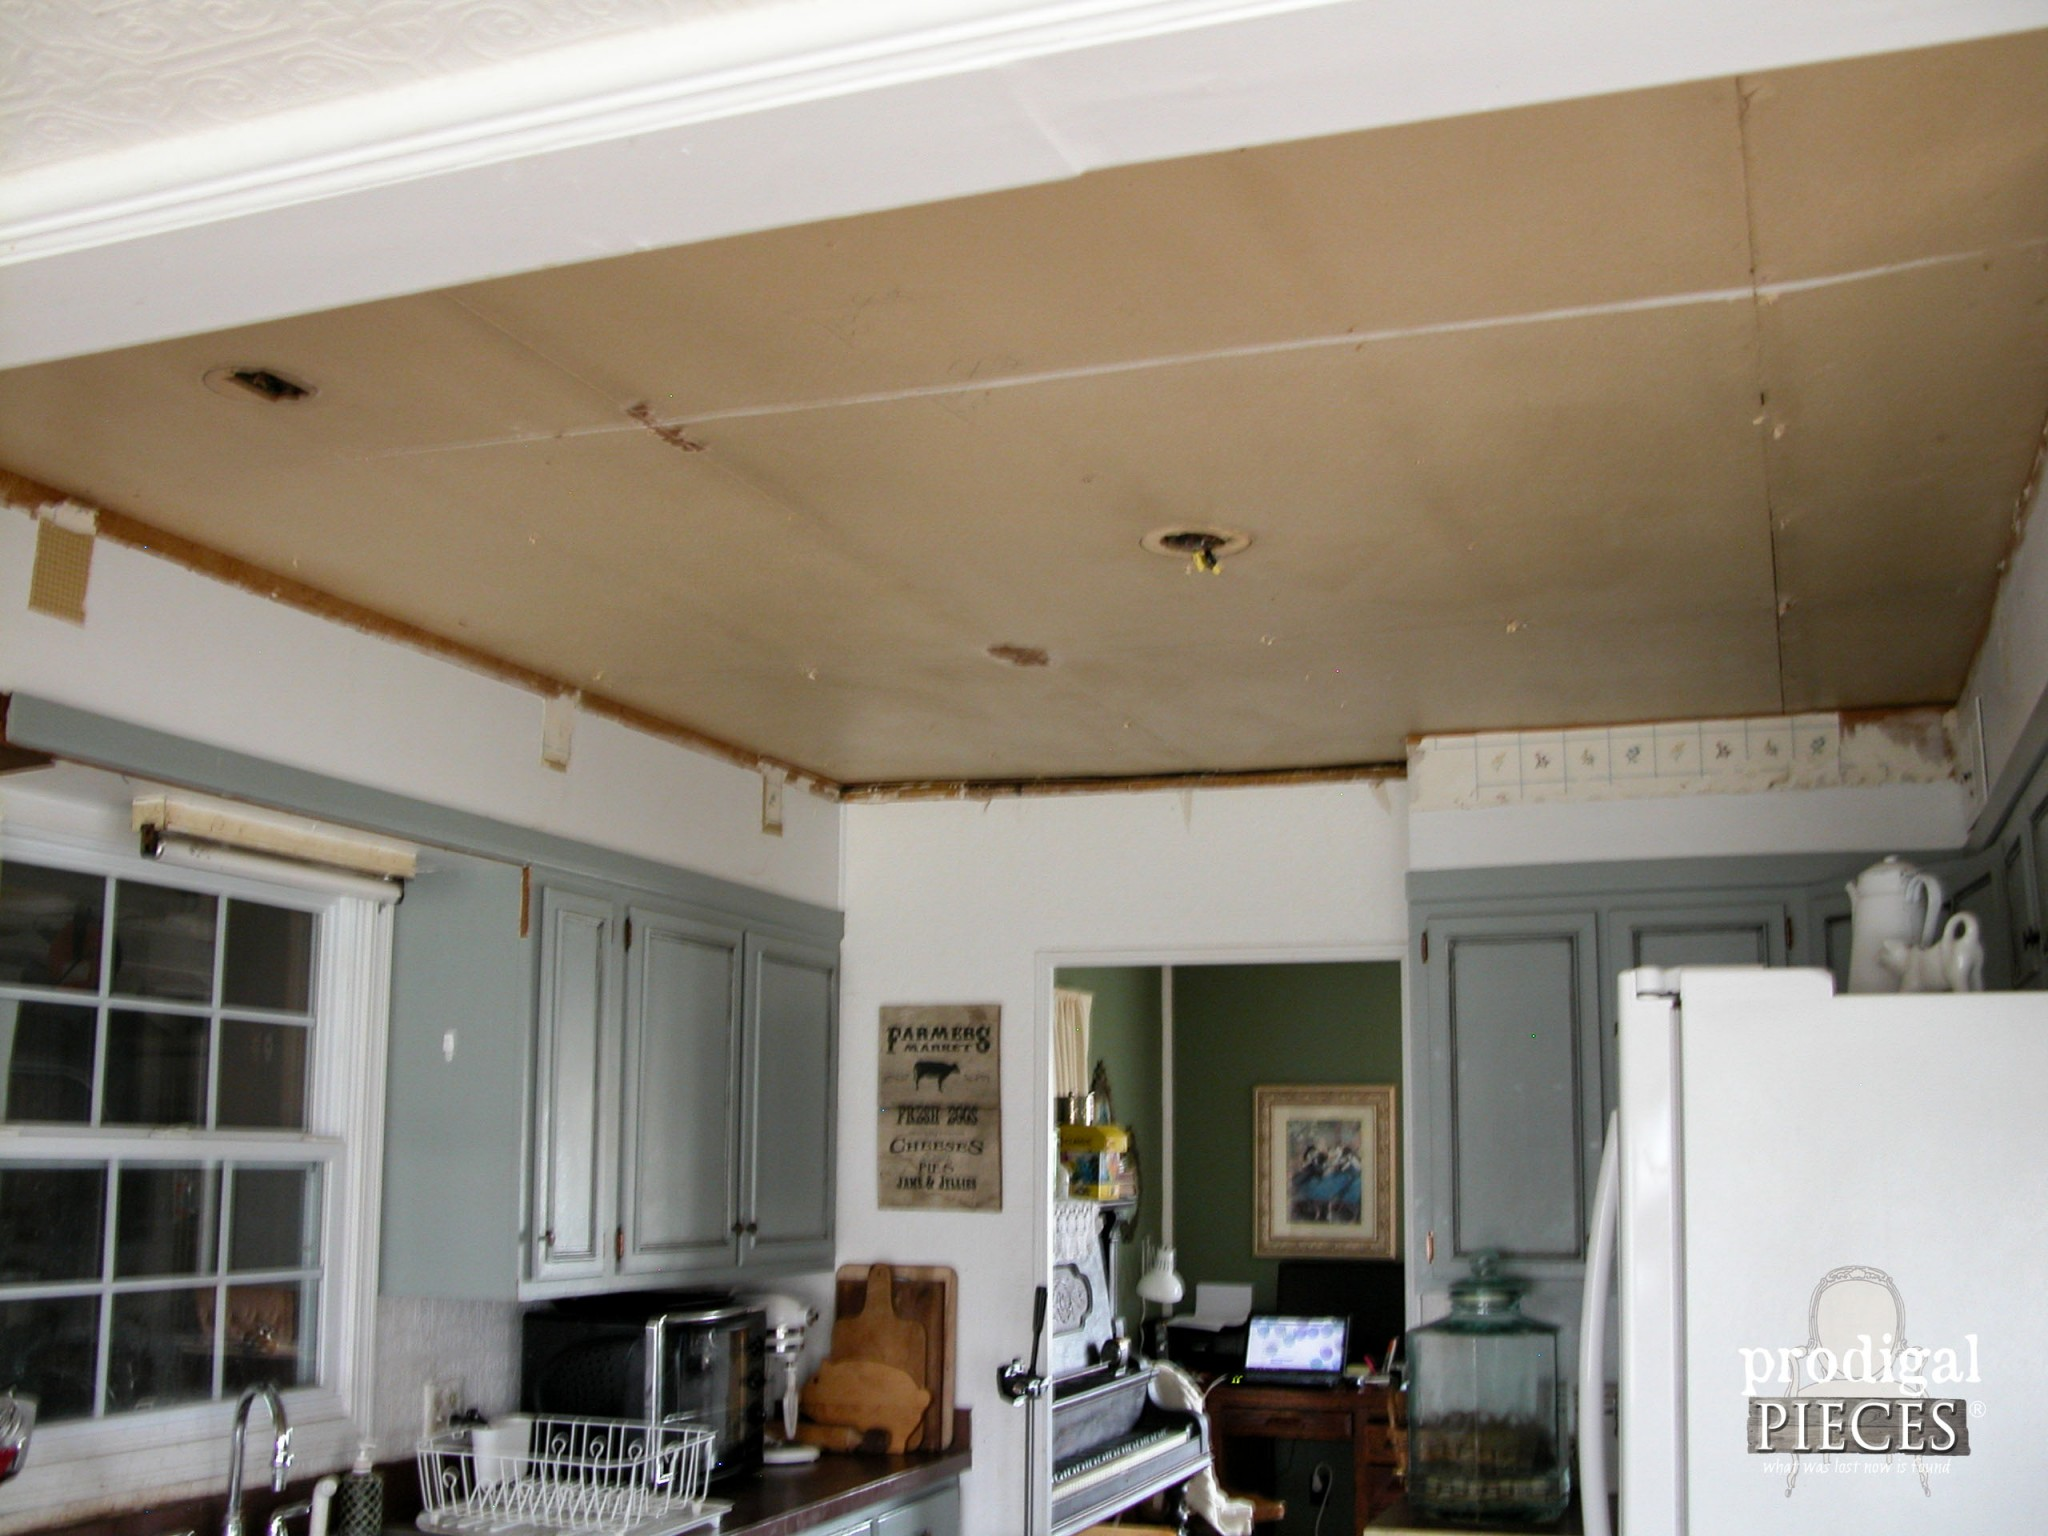 Kitchen Ceiling Restoration | Prodigal Pieces | www.prodigalpieces.com